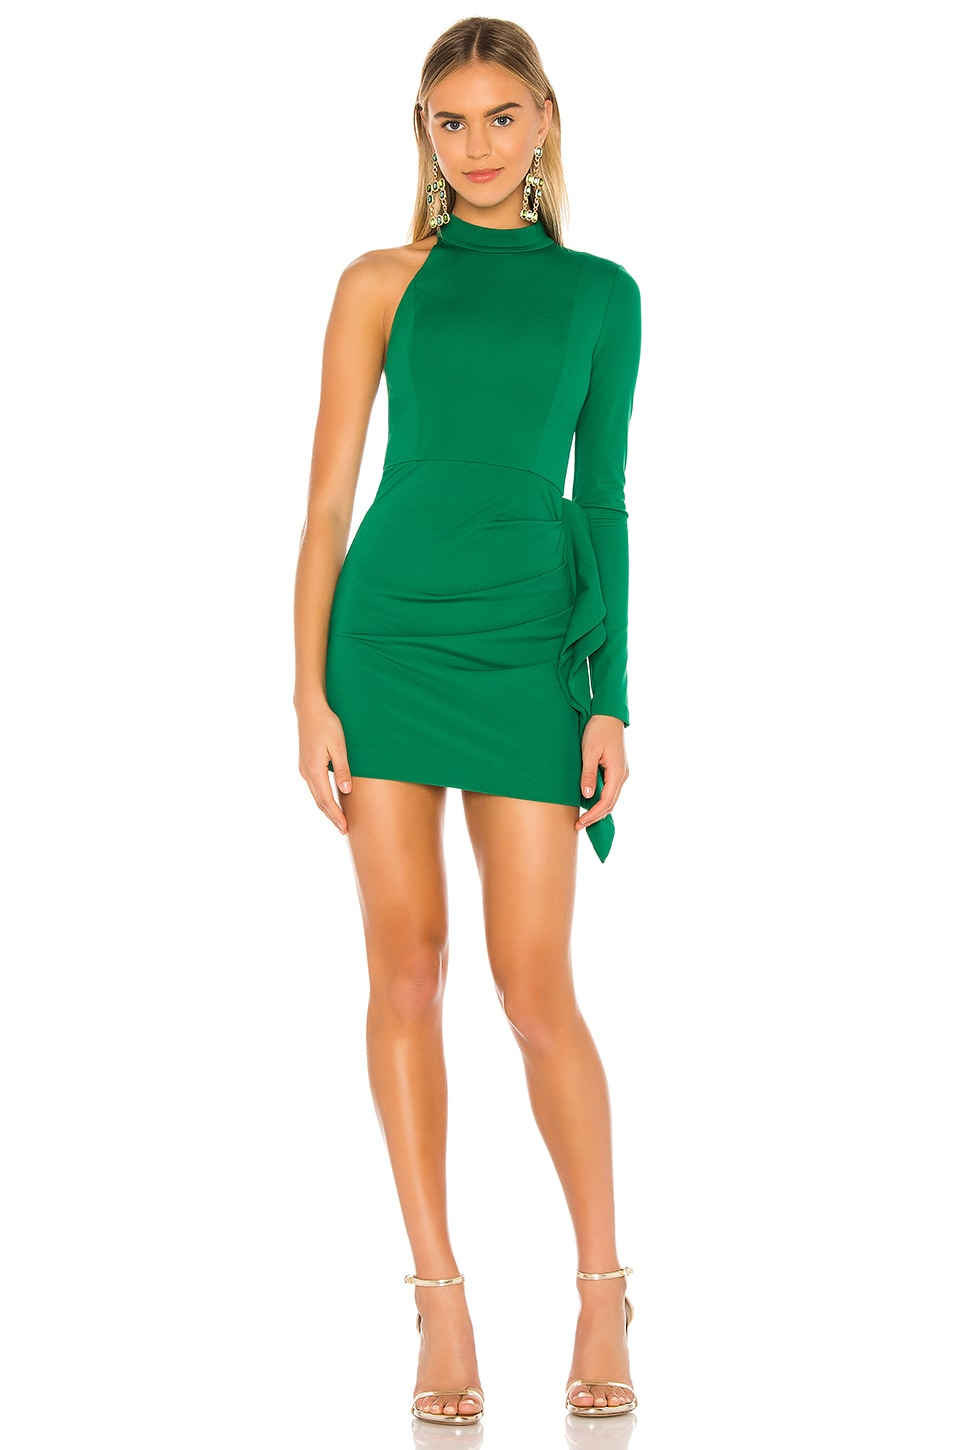 NBD Taj Mini Dress in Kelly Green